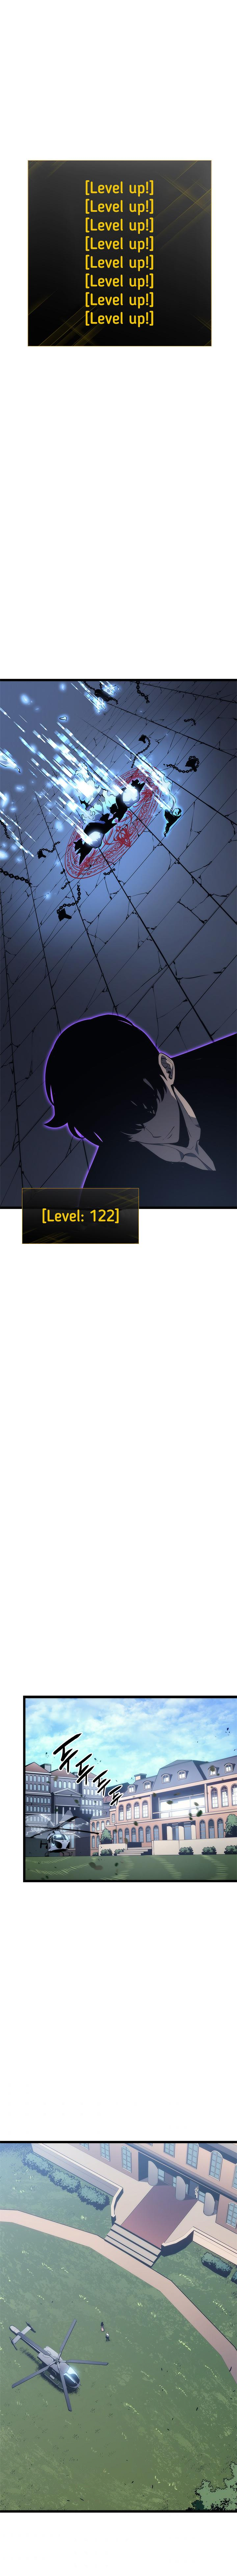 solo-leveling-138-16